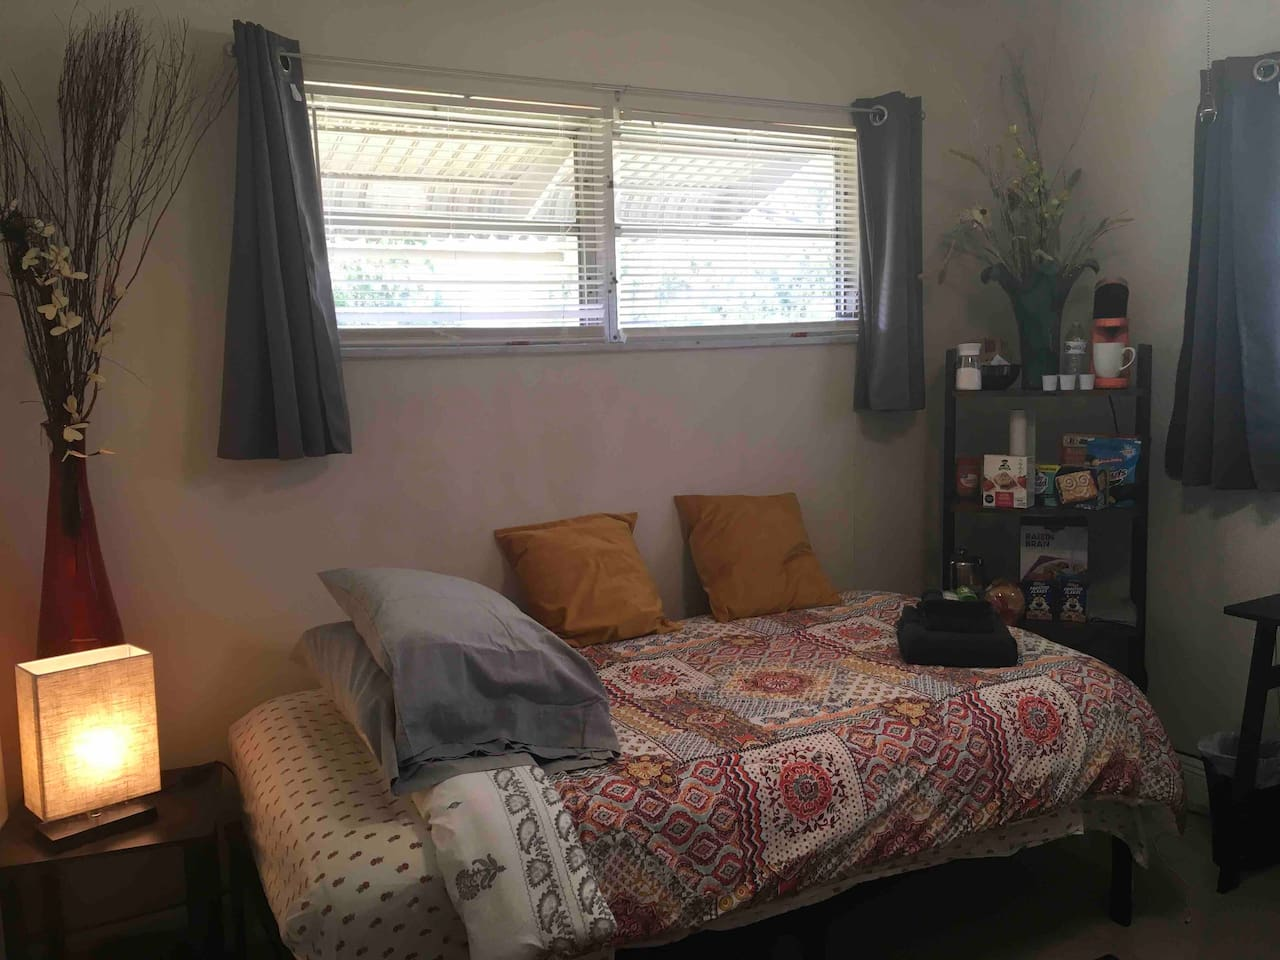 Comfortable, private bedroom with continental breakfast, premium cable HBO, DirecTV